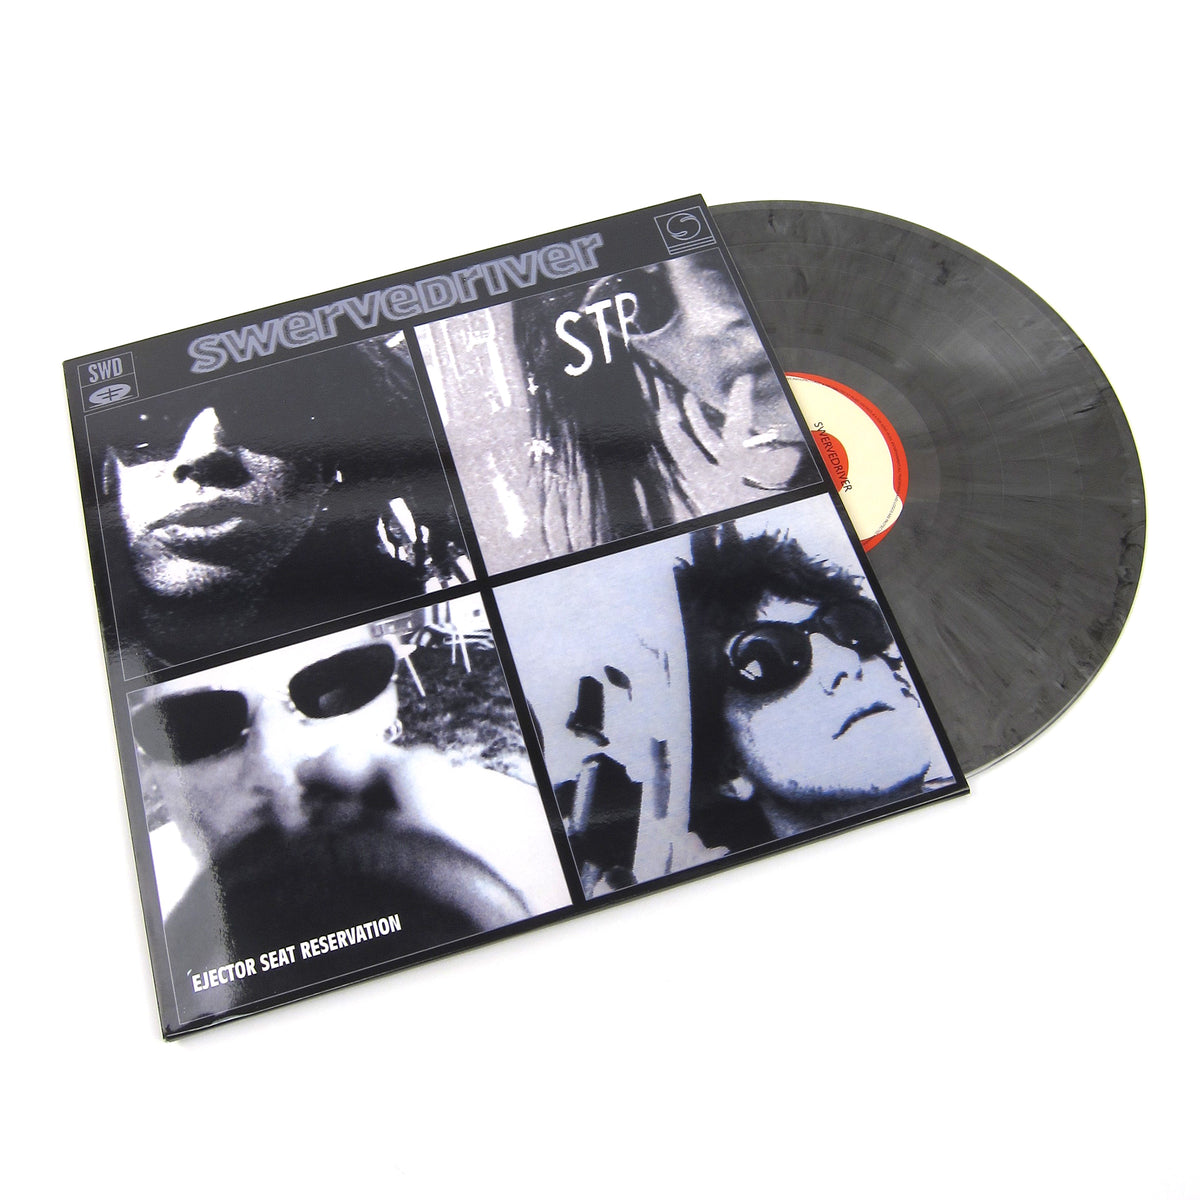 Swervedriver: Ejector Seat Reservation (Music On Vinyl 180g, Colored Vinyl) Vinyl LP+12""